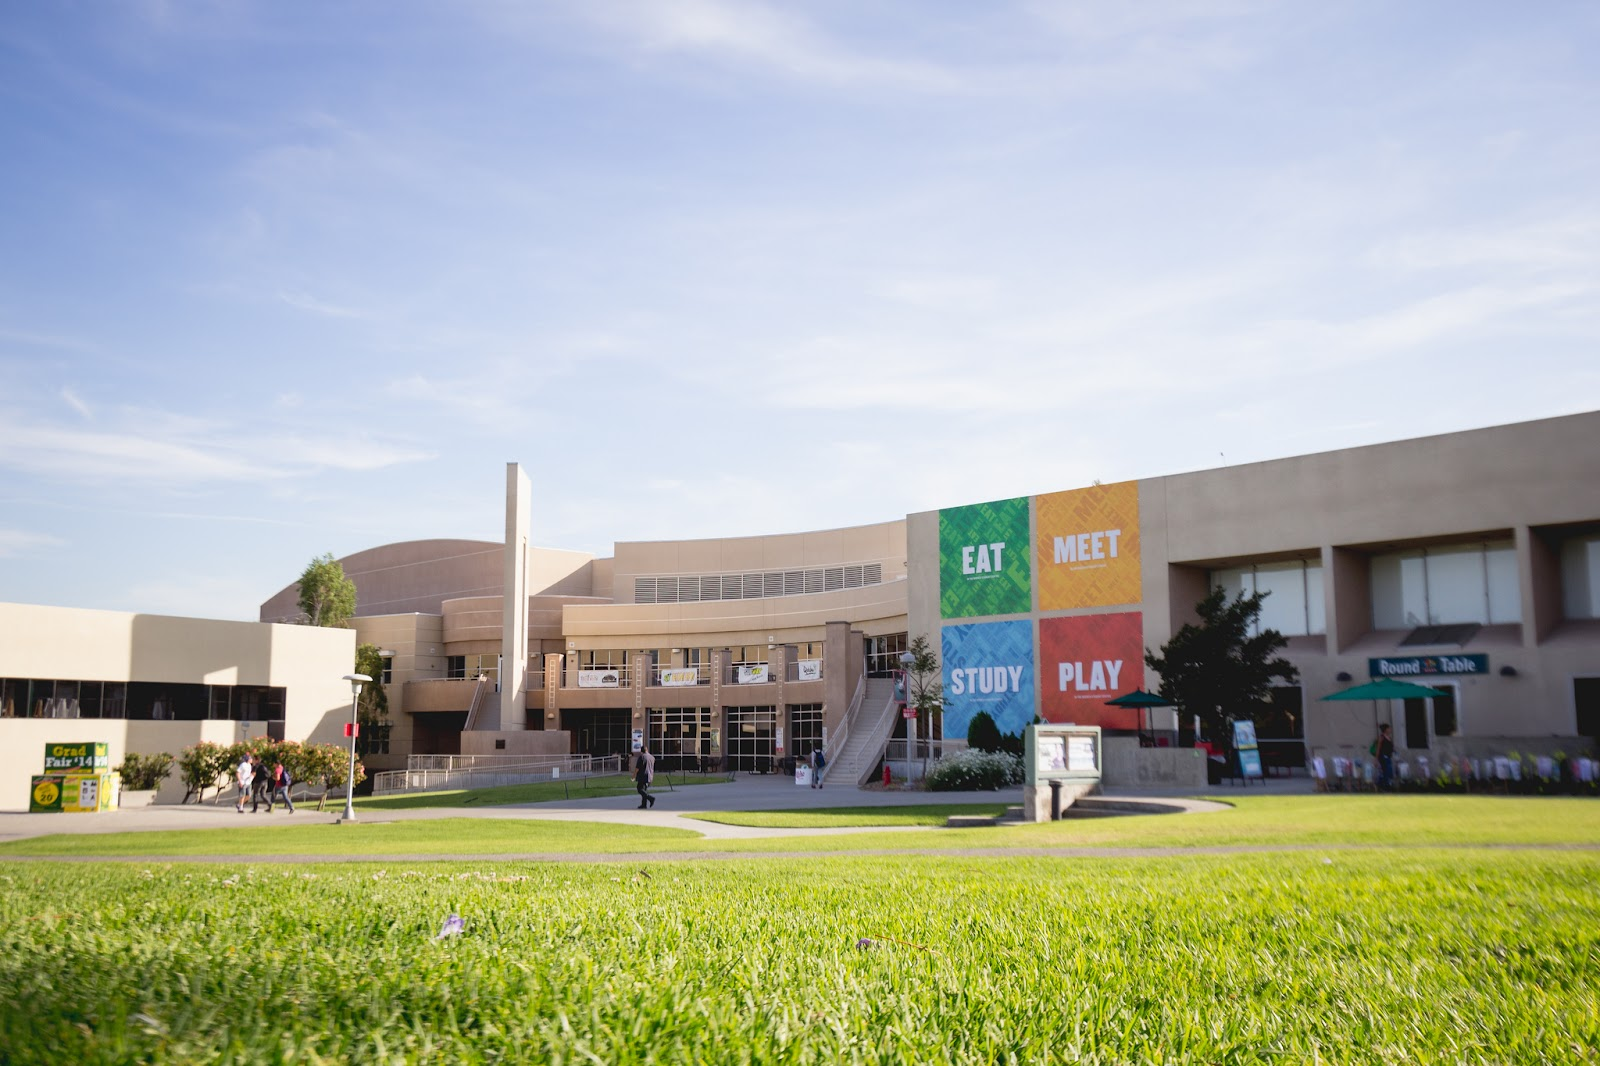 Photo of the Bronco Student Center.